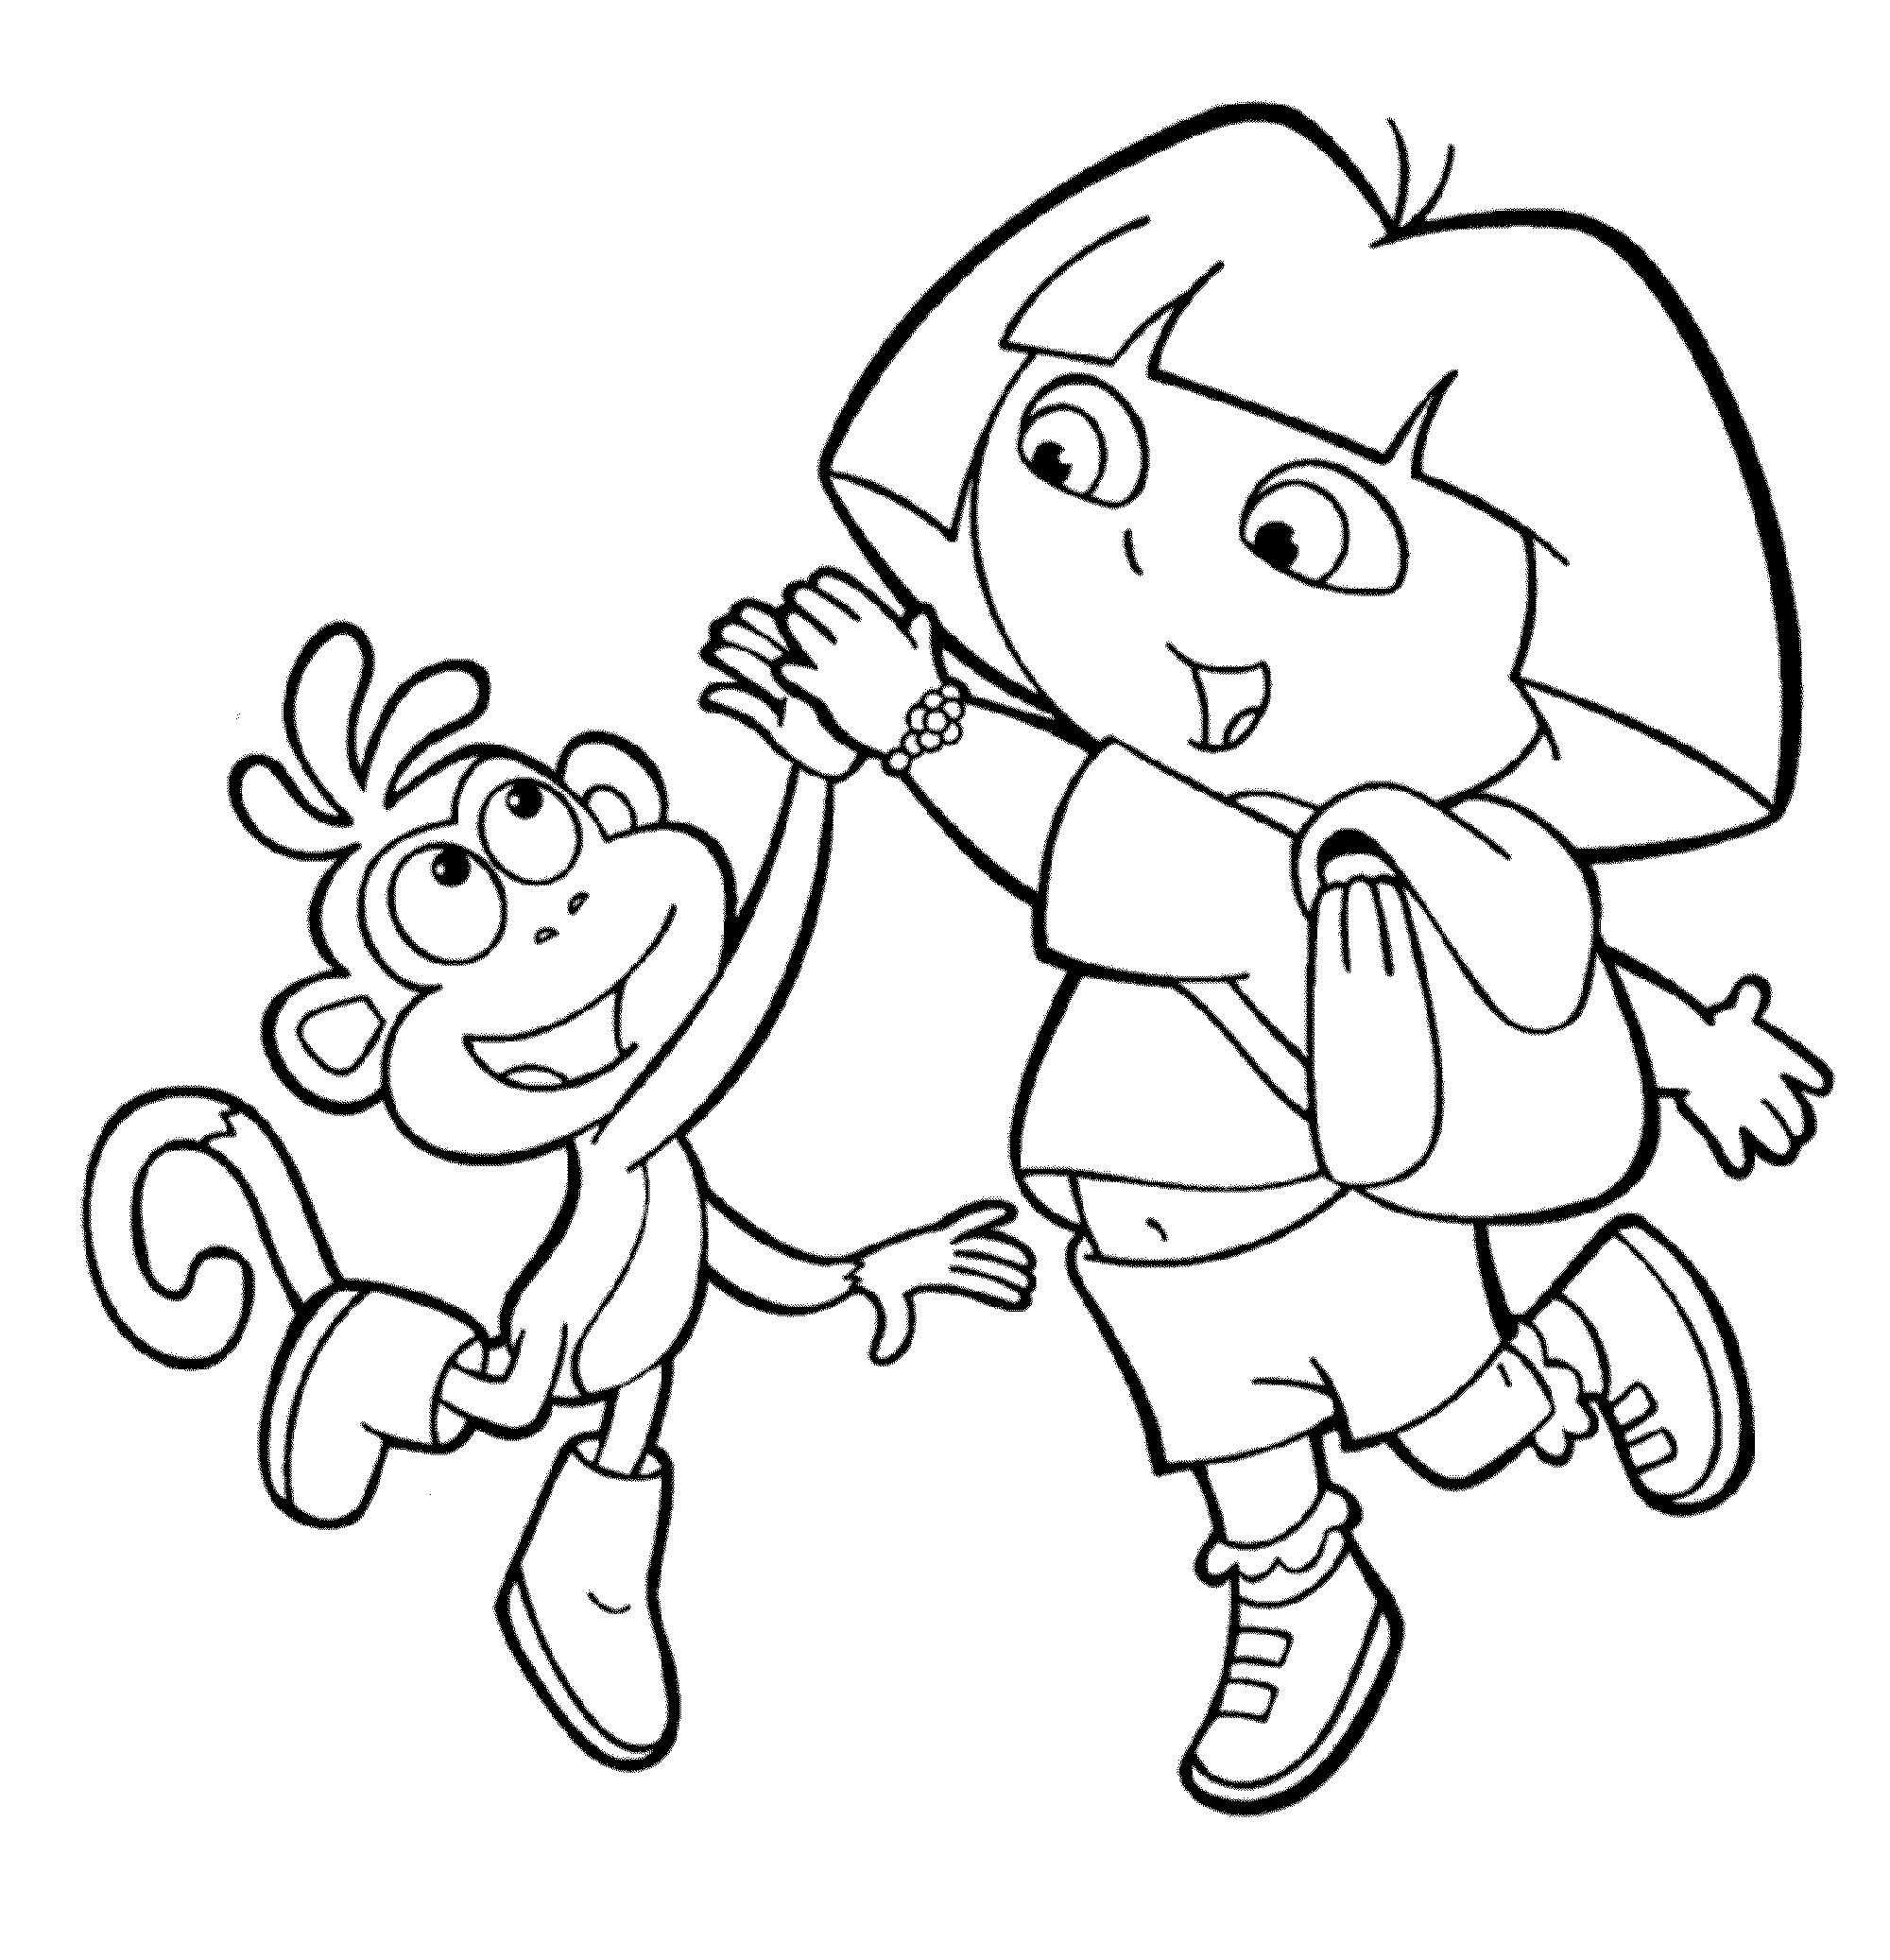 dora coloring pages to print print download dora coloring pages to learn new things to coloring dora print pages